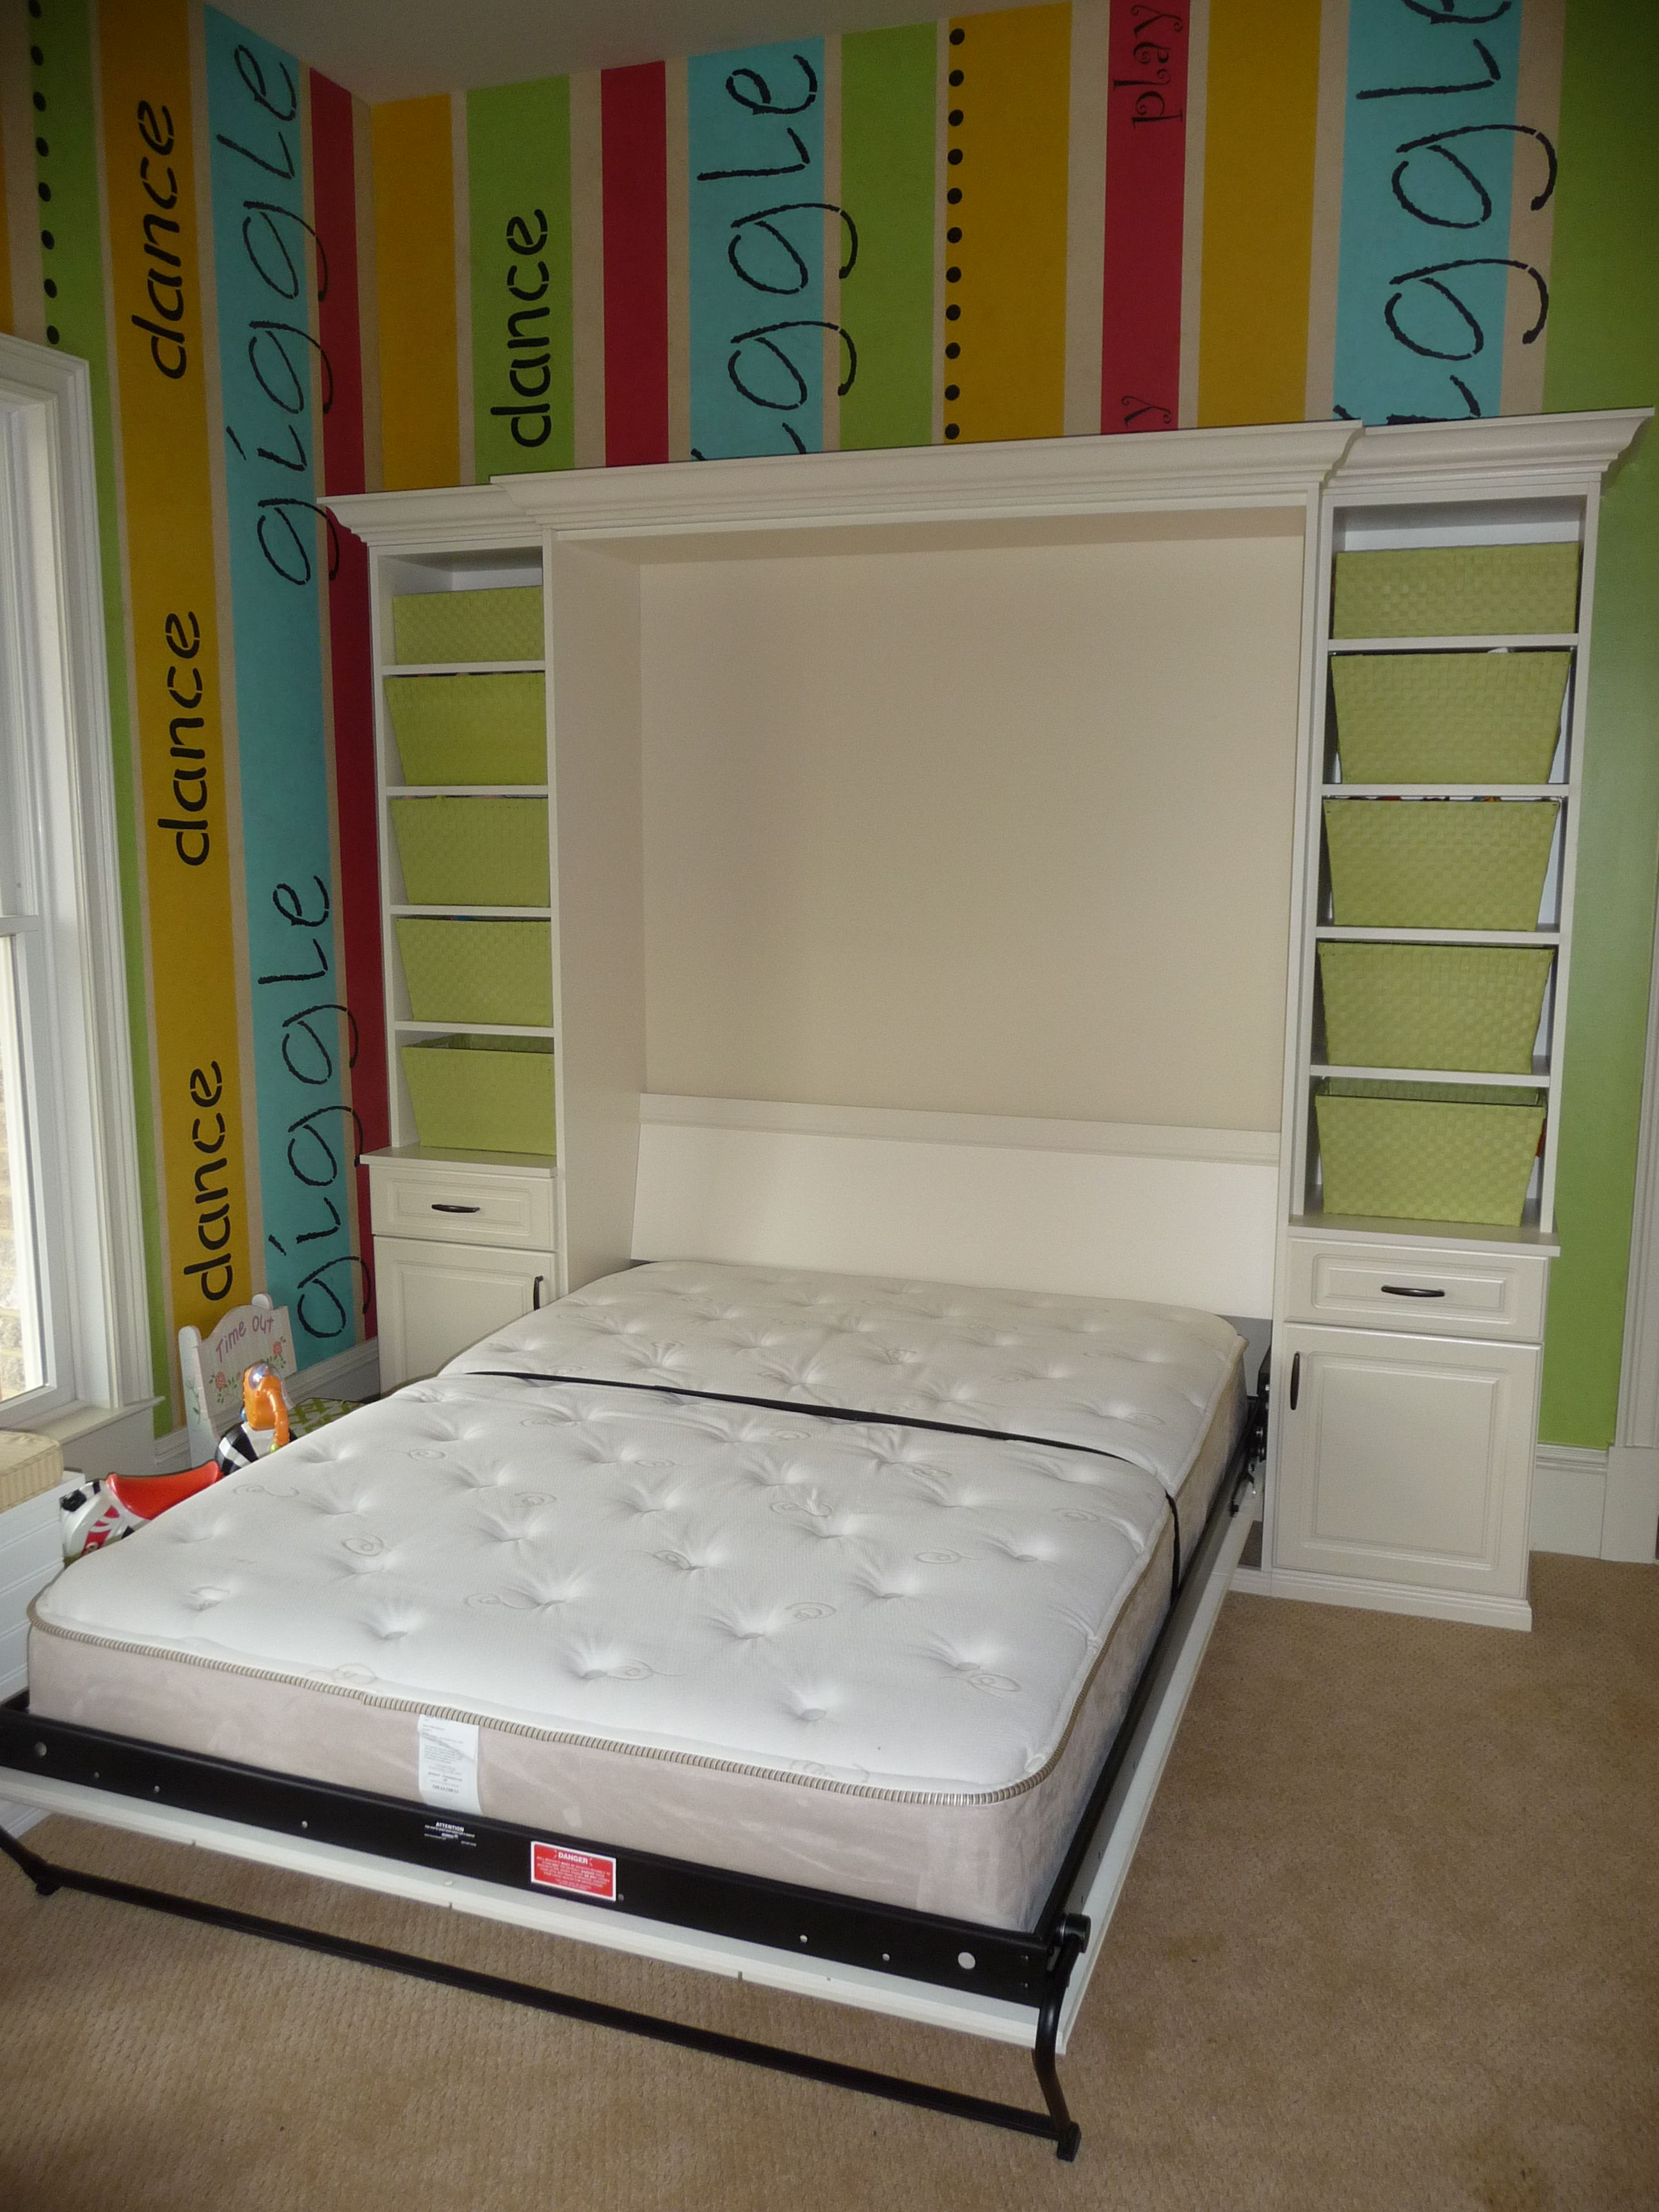 Murphy bed queen size with doors open this playroom Queen size murphy bed